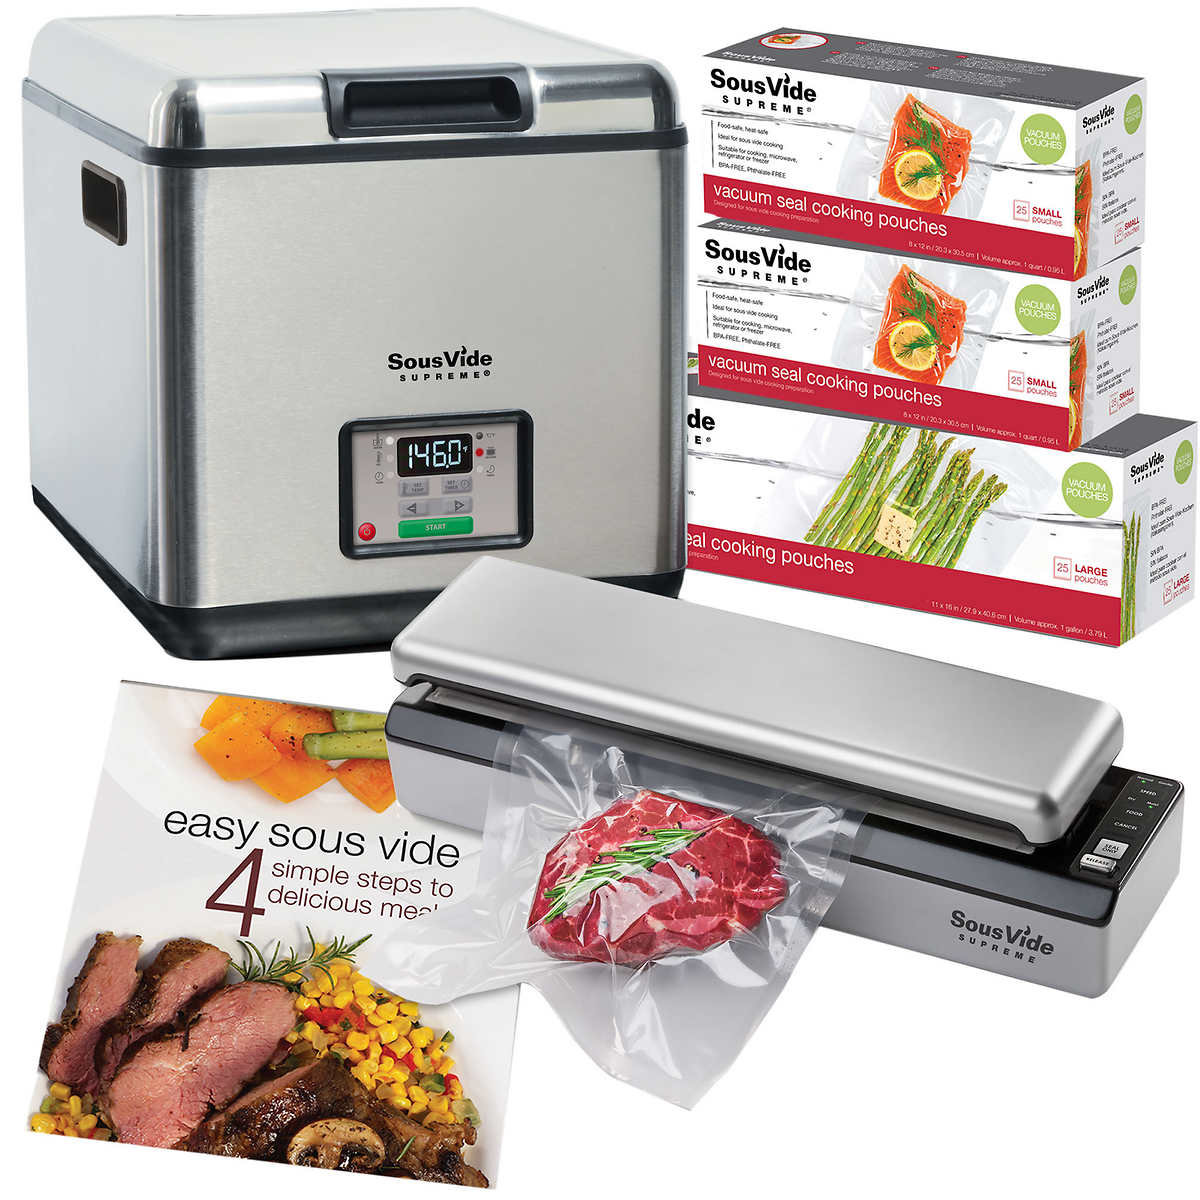 Uncategorized Costco Kitchen Appliances specialty appliances costco sousvide supreme 11 liter water oven system with accessories